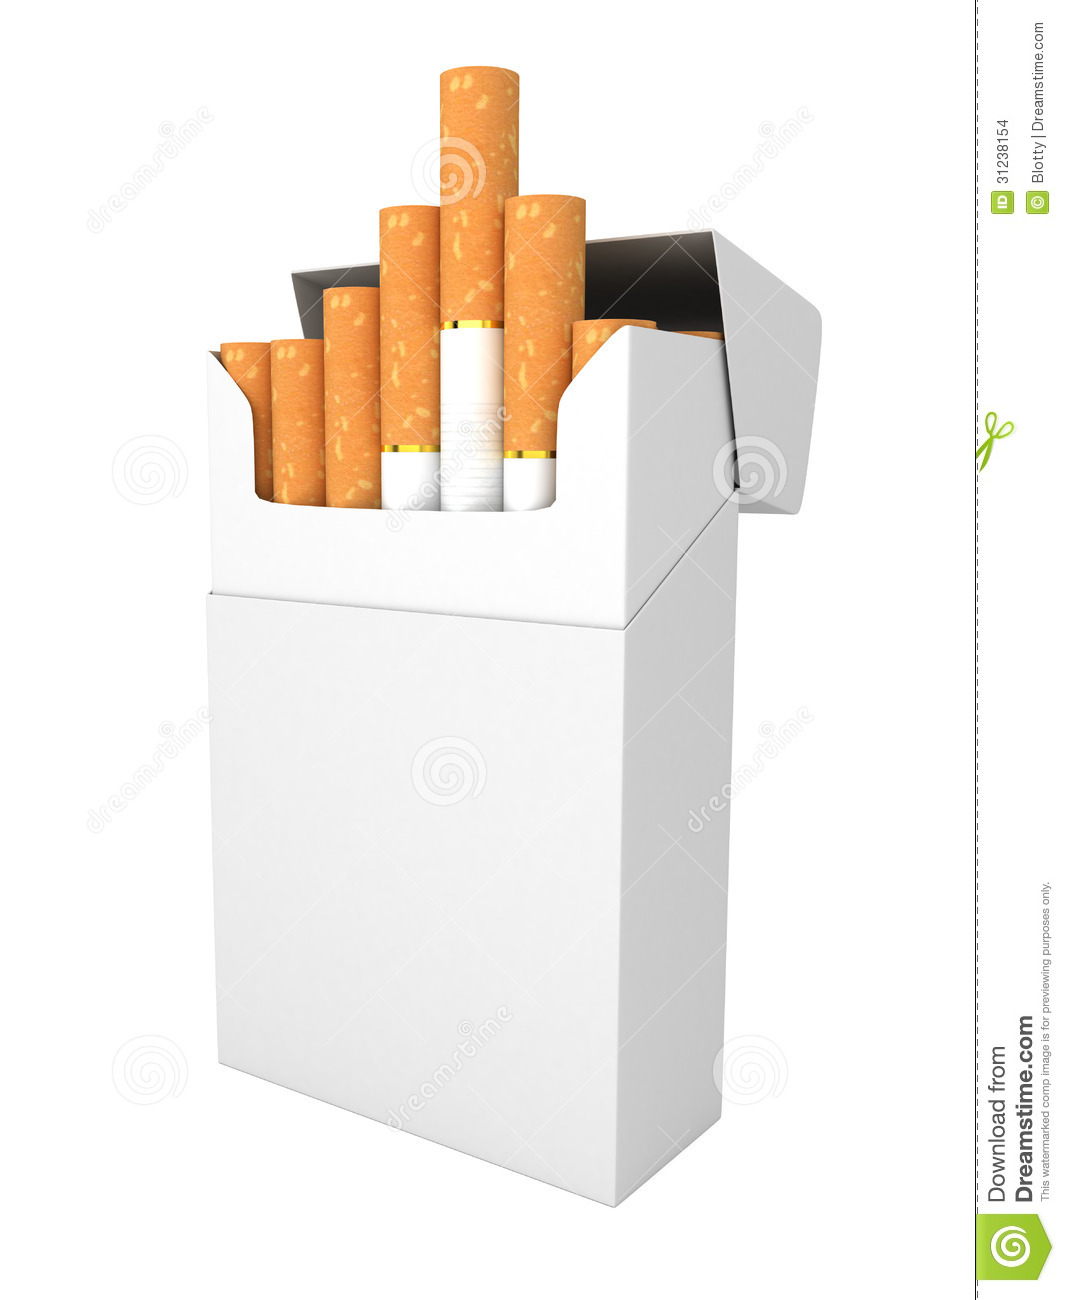 Open Full Pack Of Cigarettes Isolated Stock Images - Image: 31238154